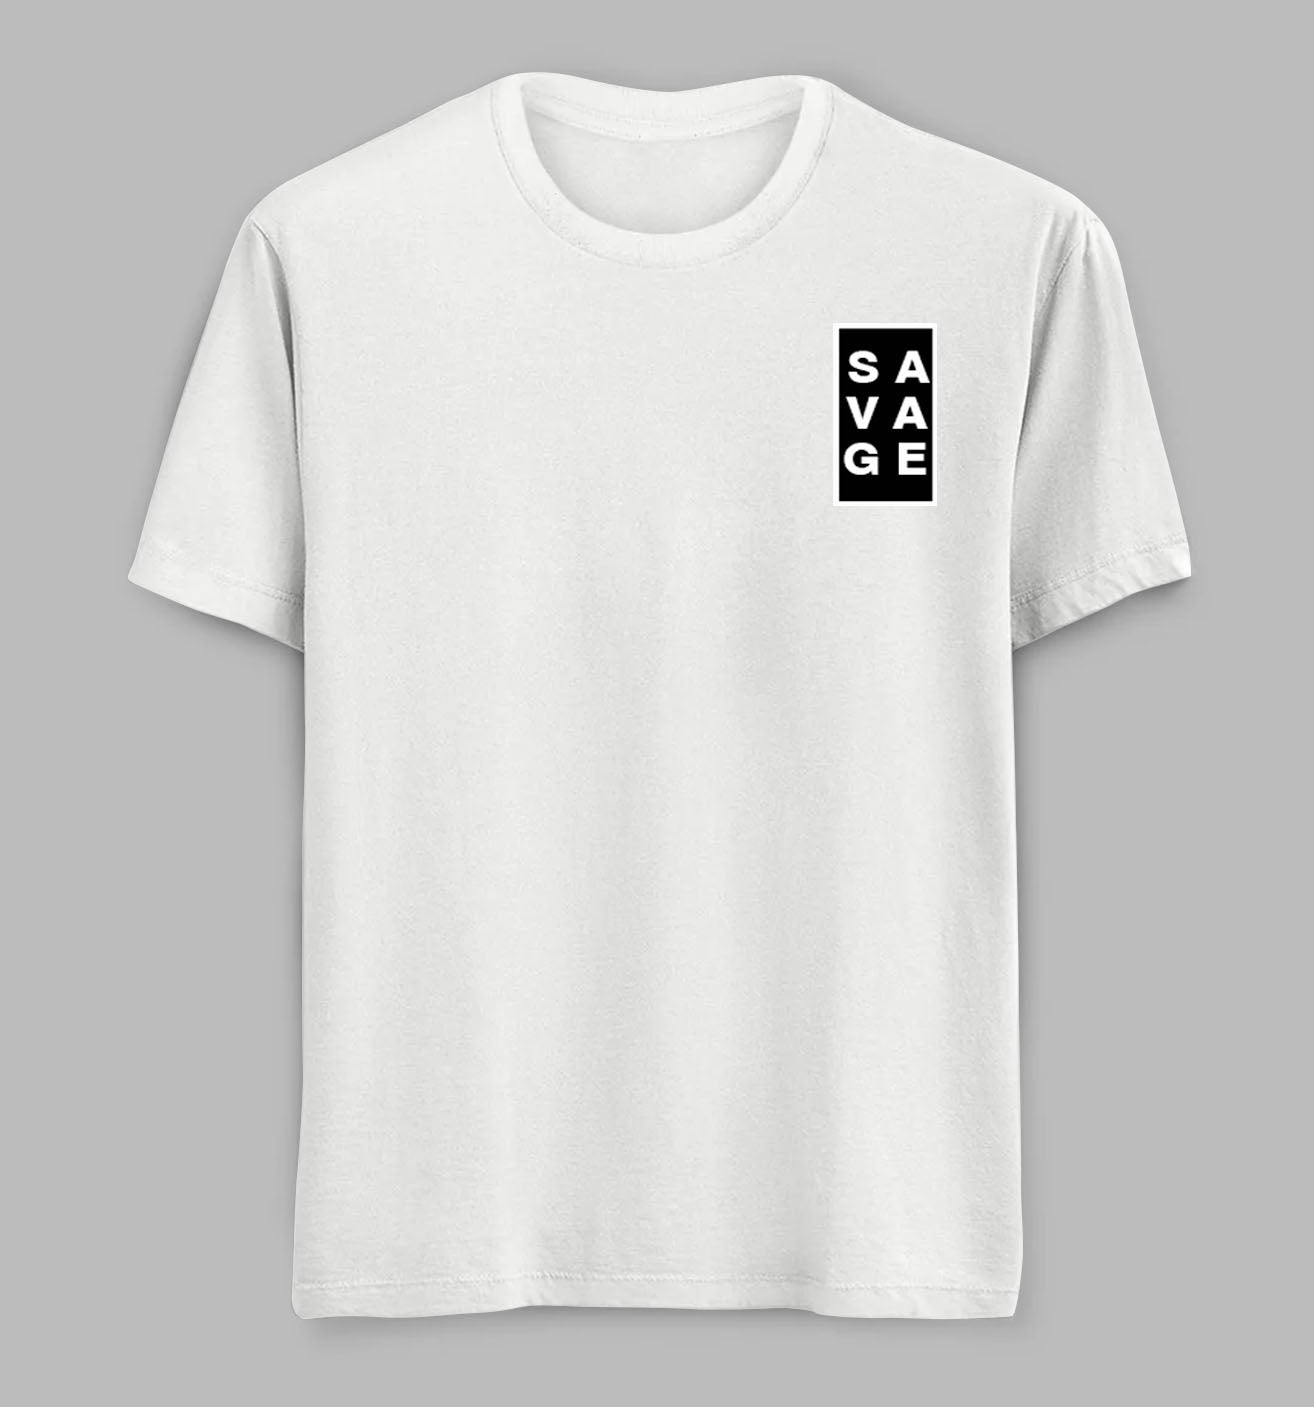 Savage Tees/Tshirts